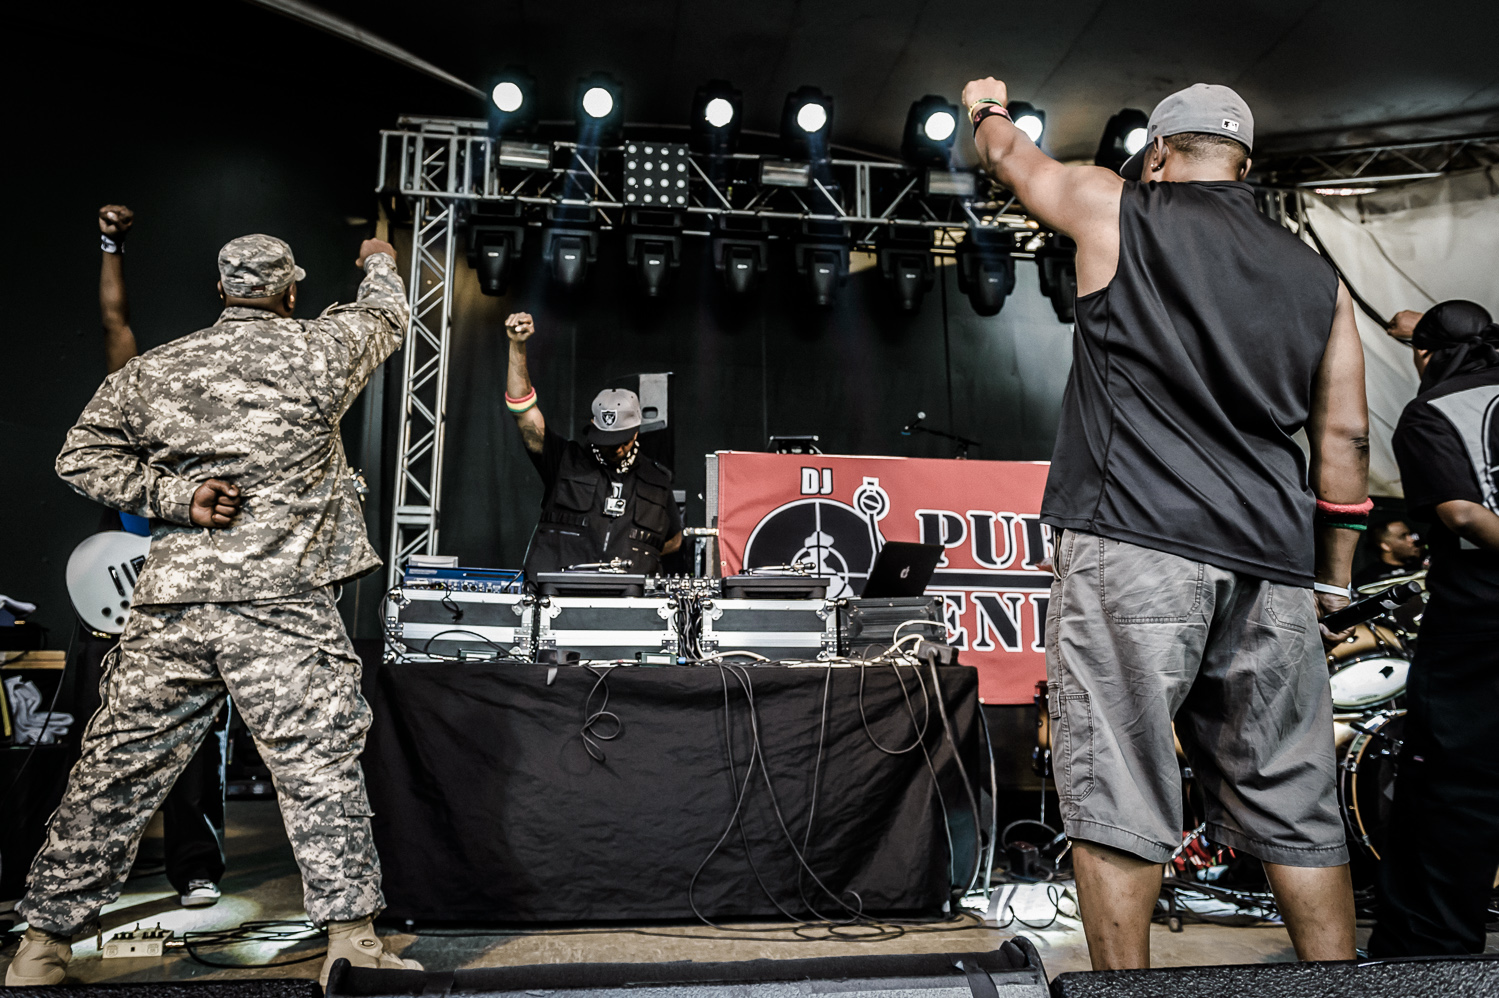 Public Enemy_001_photo_©2013 Steve Dykes.jpg